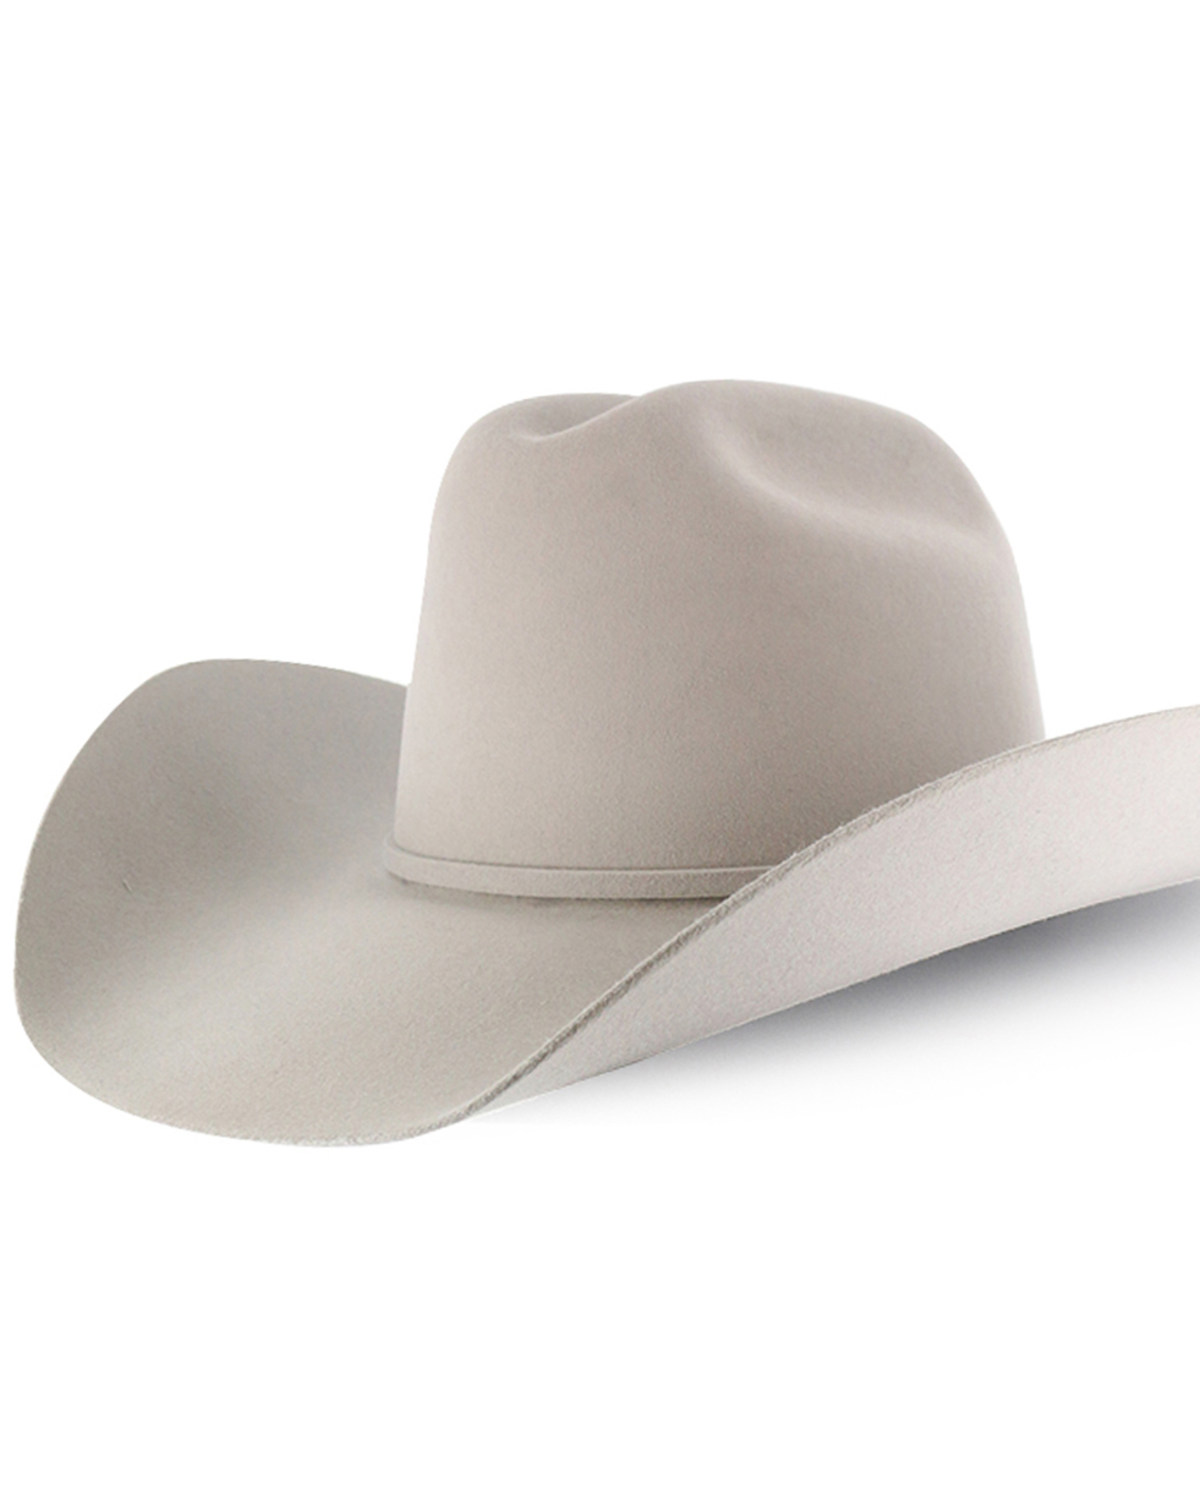 64fa0f6c Zoomed Image Rodeo King Men's Rodeo 7X Felt Cowboy Hat, Cream, hi-res.  Zoomed Image ...